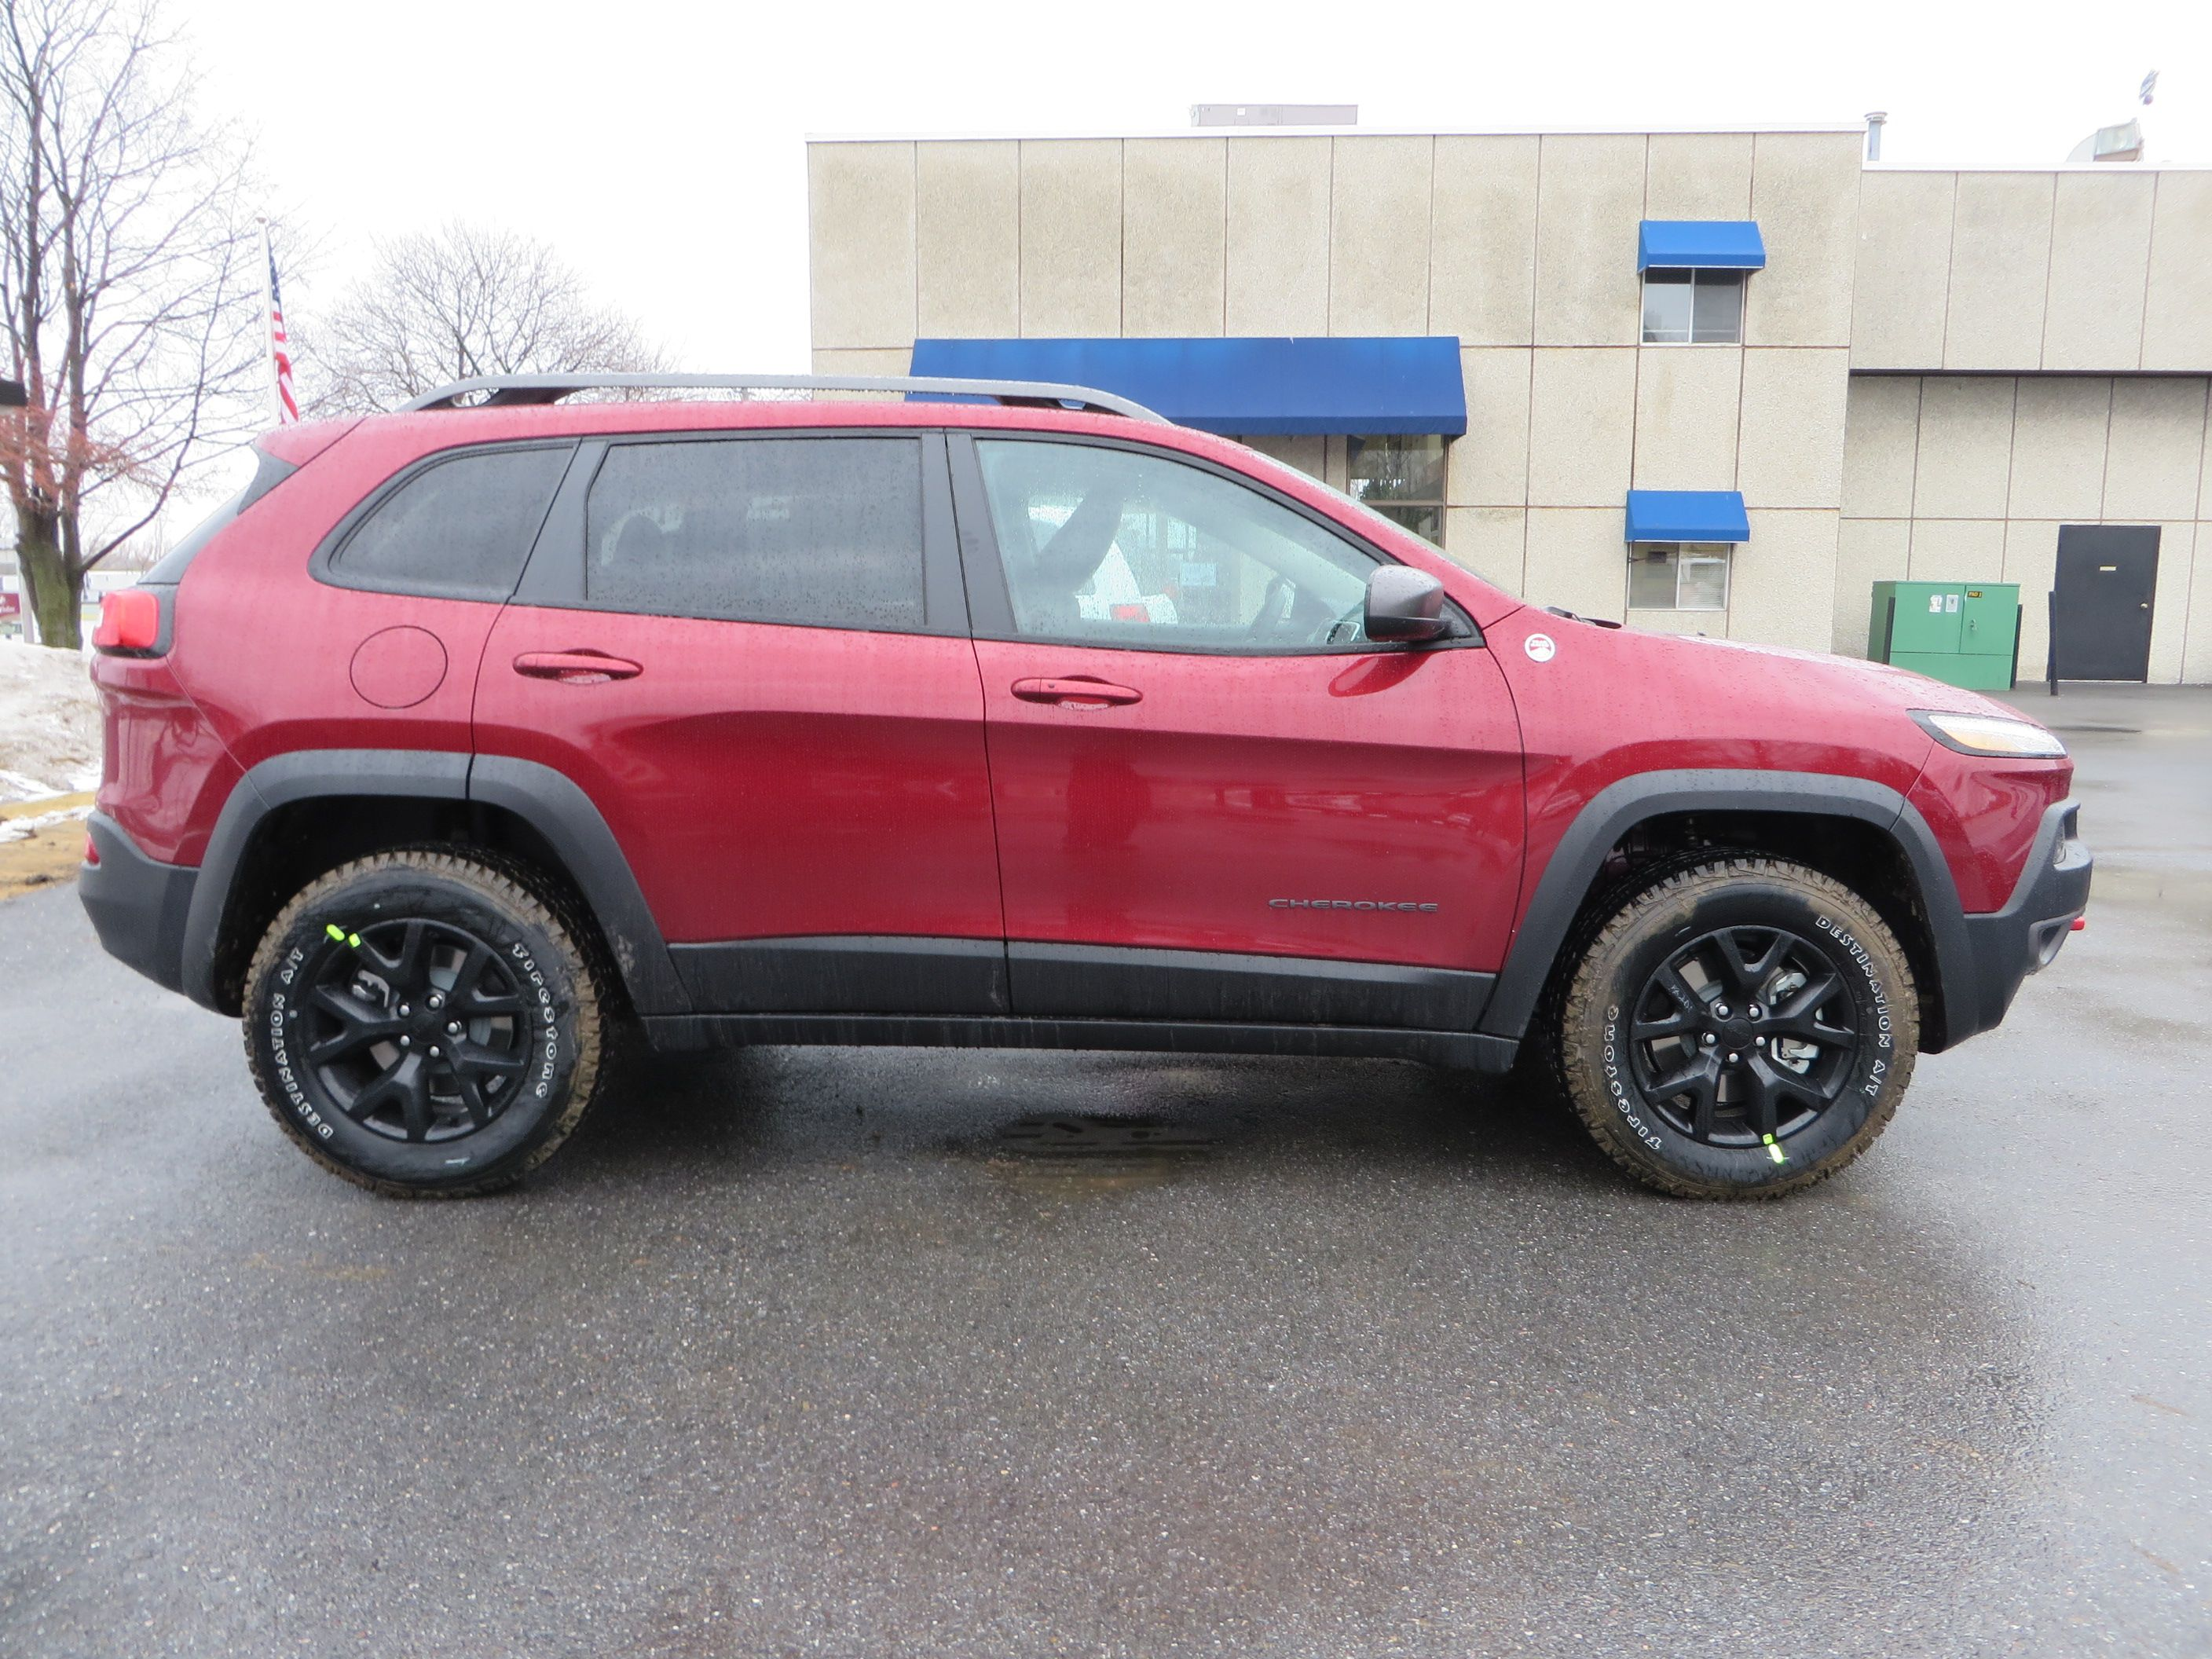 2015 jeep cherokee trailhawk in cherry red with black wheels 2015 jeep cherokee pinterest. Black Bedroom Furniture Sets. Home Design Ideas